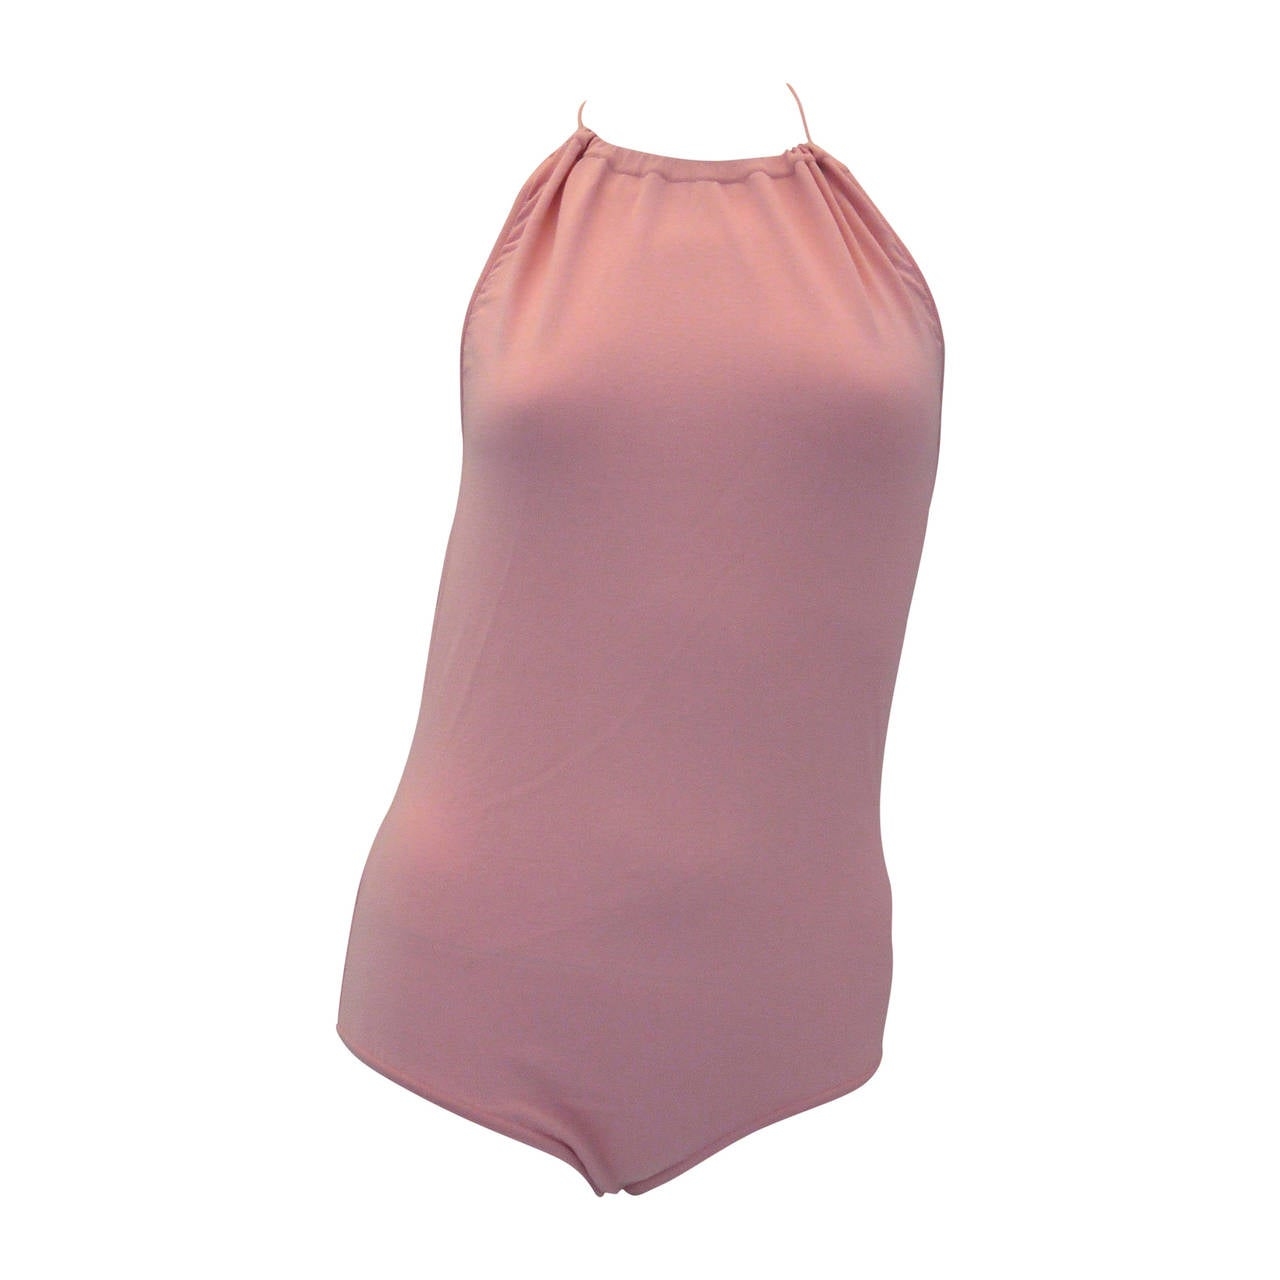 Chanel Pink Body Suit - Size 40 1